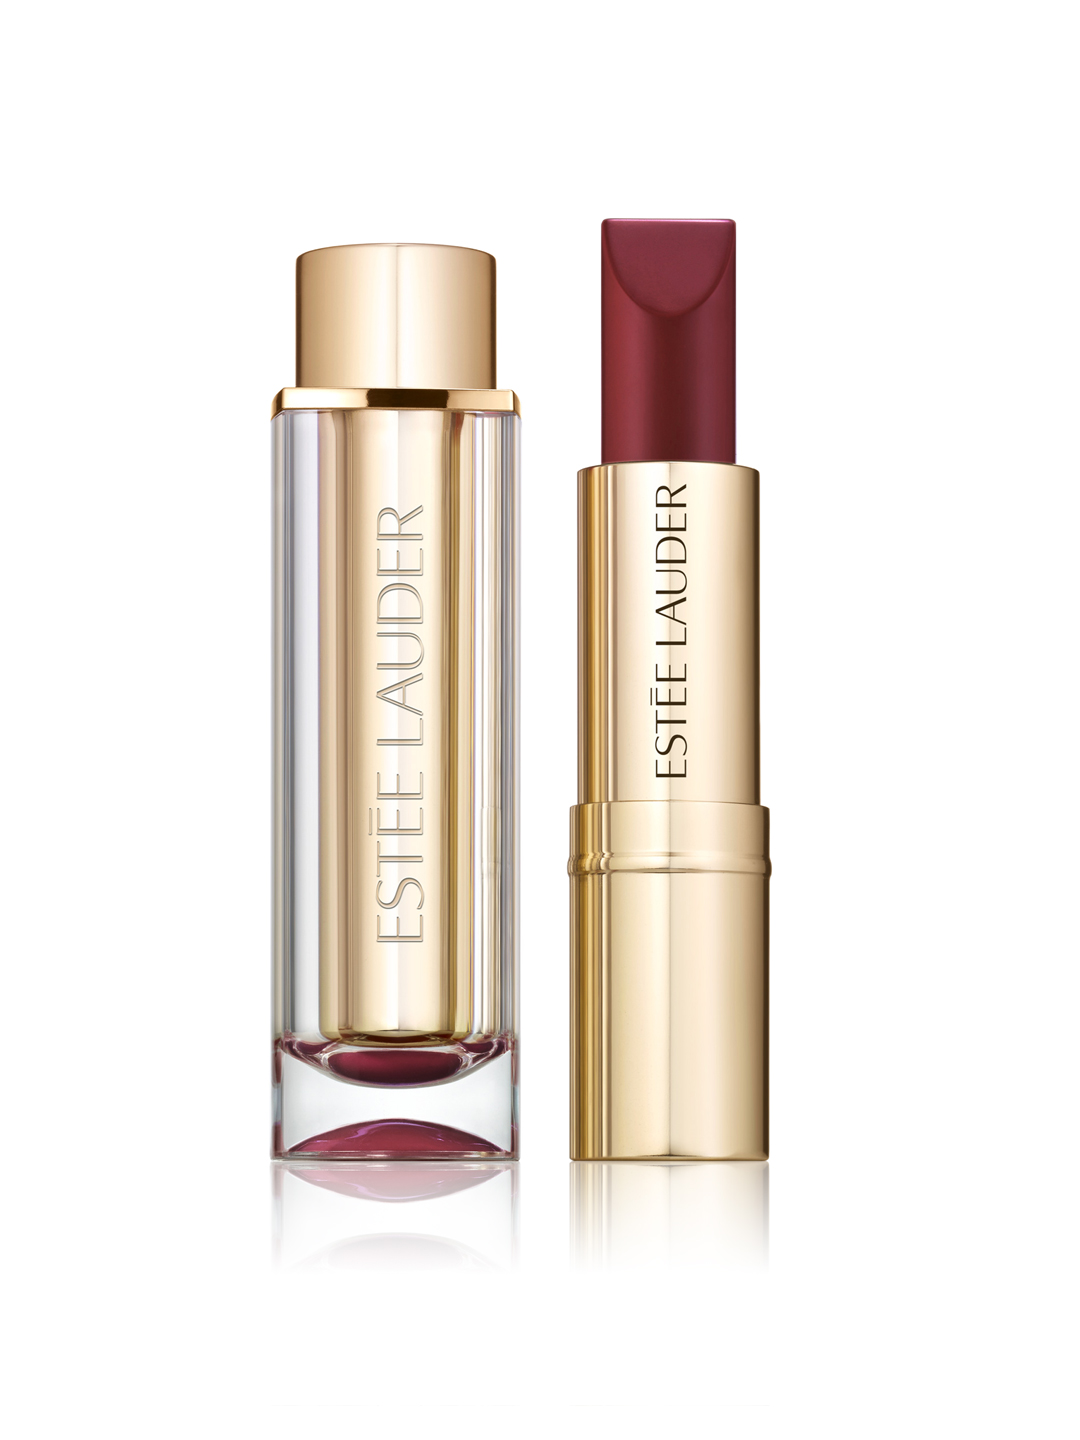 Estee Lauder Rose Xcess Pure Color Love Lipstick